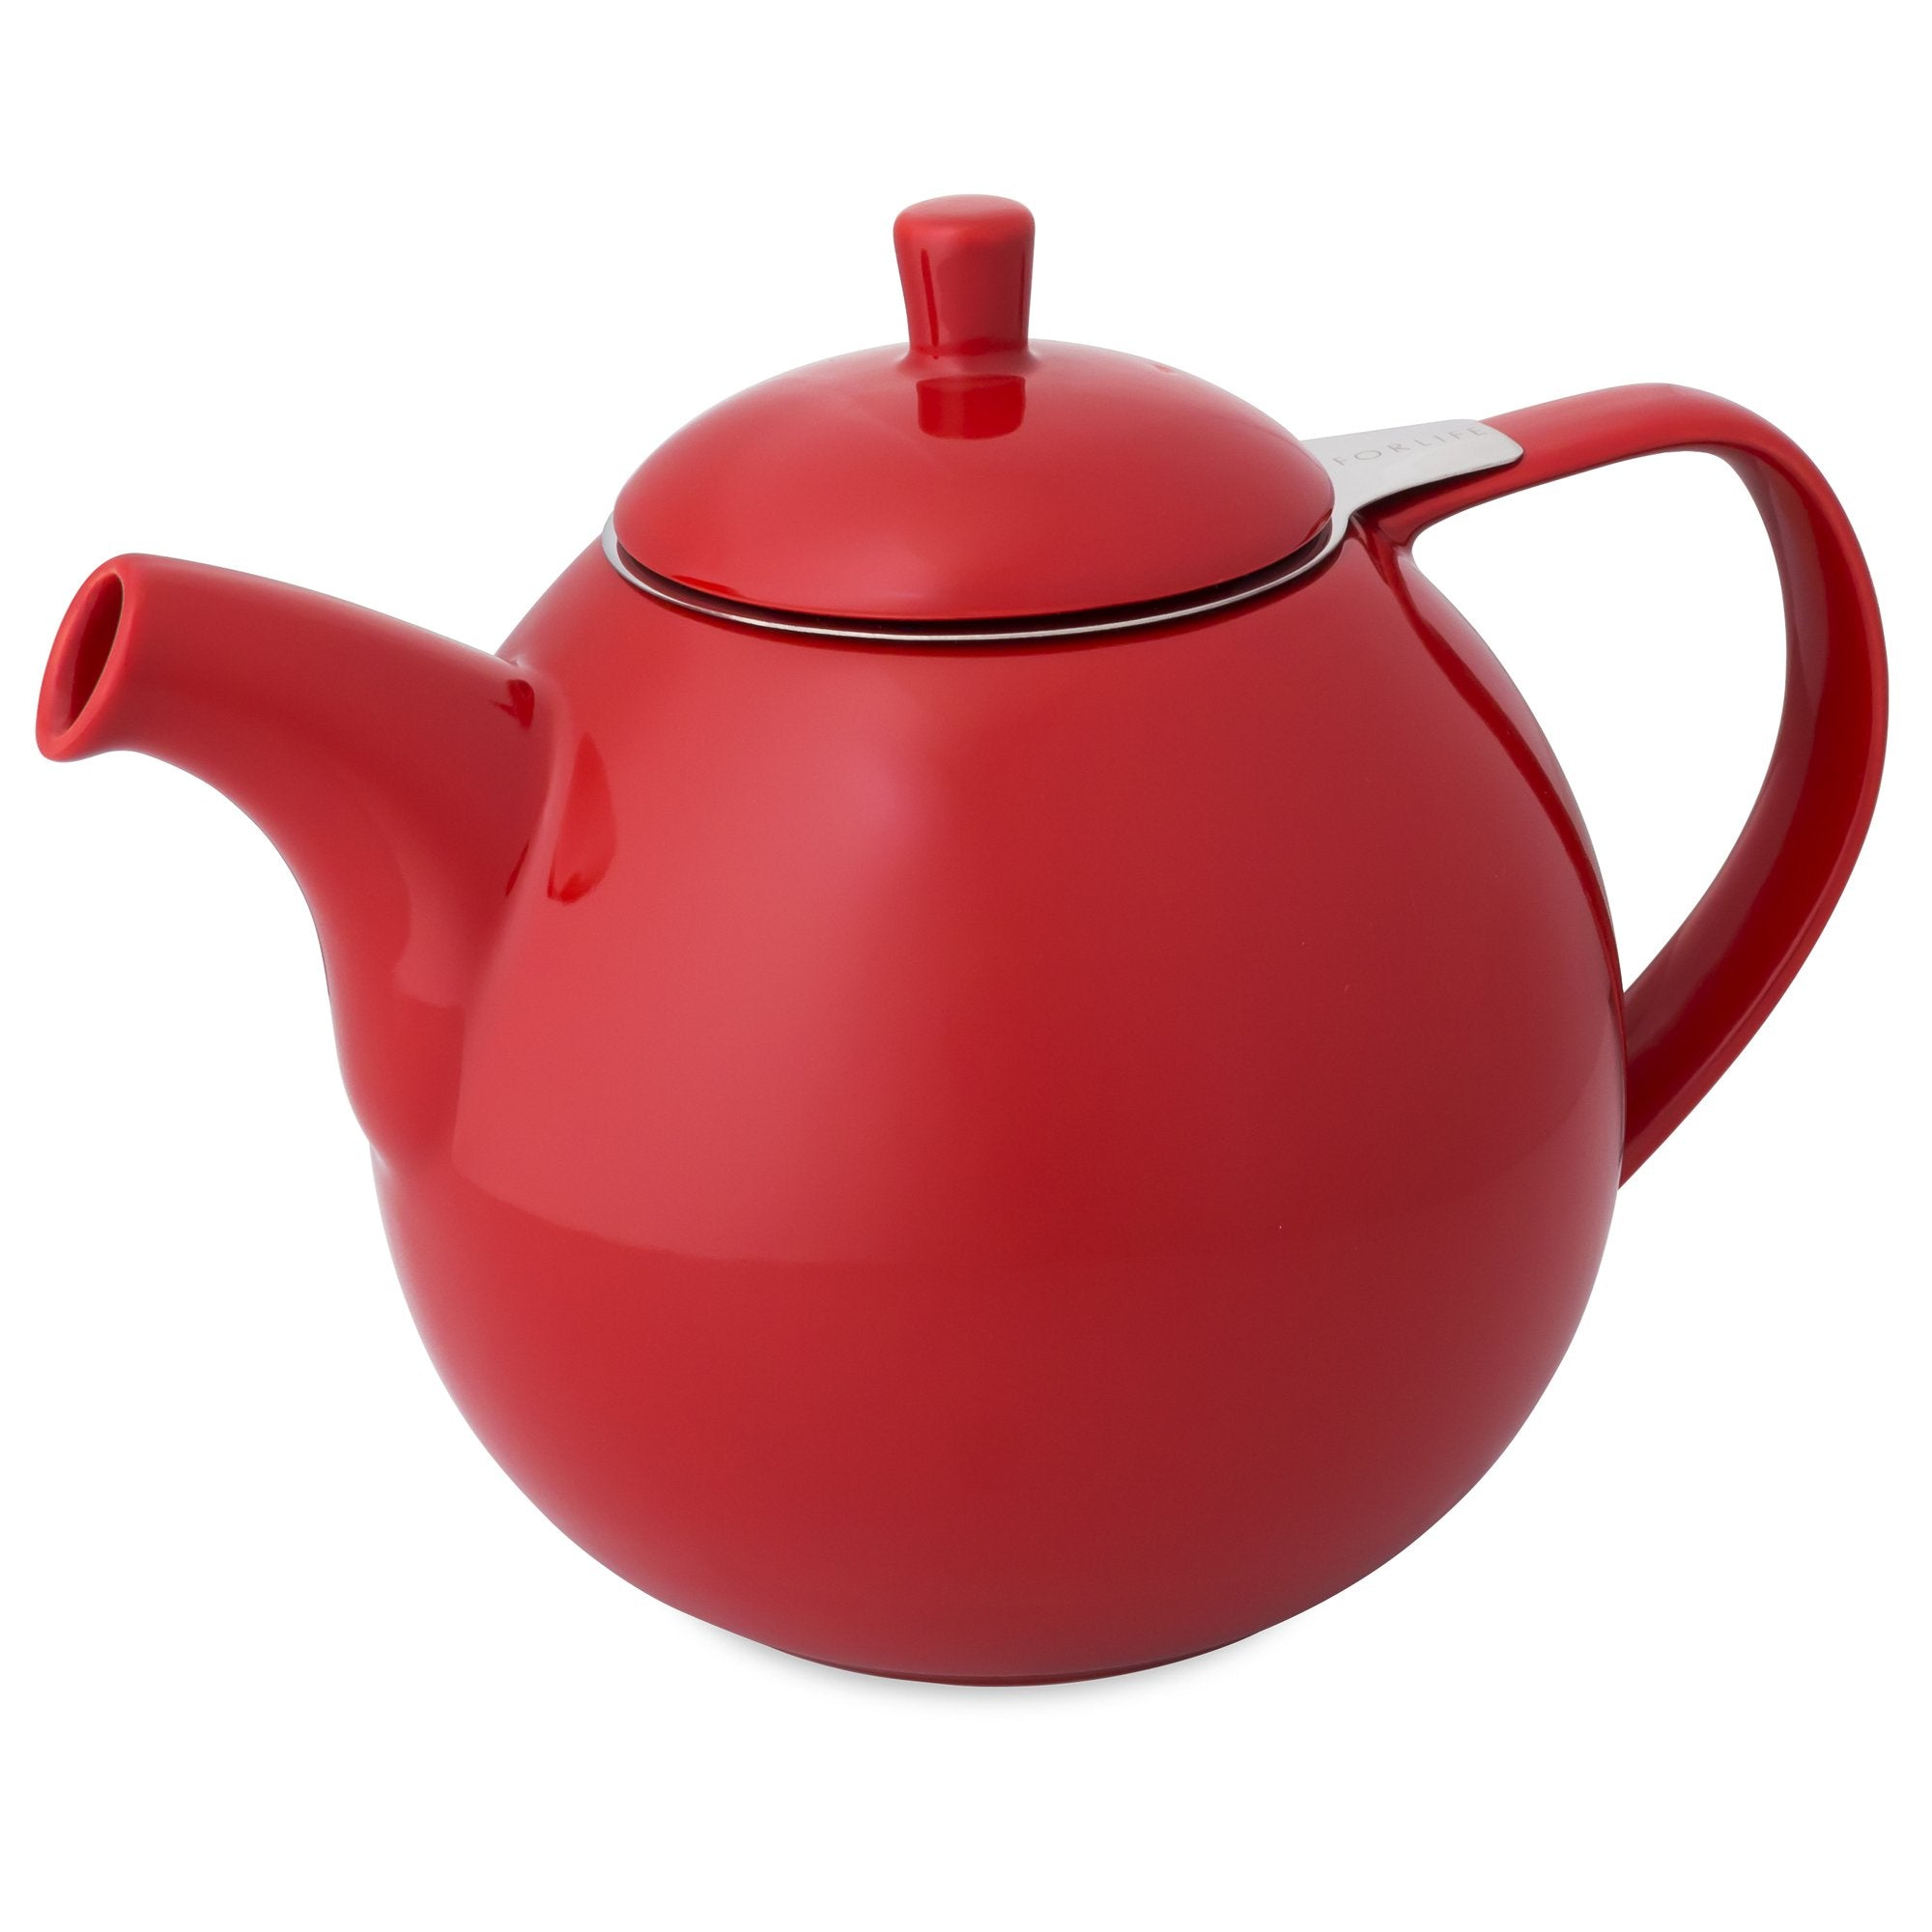 TeaLula 45 oz Curve red Teapot glossy surface with lid